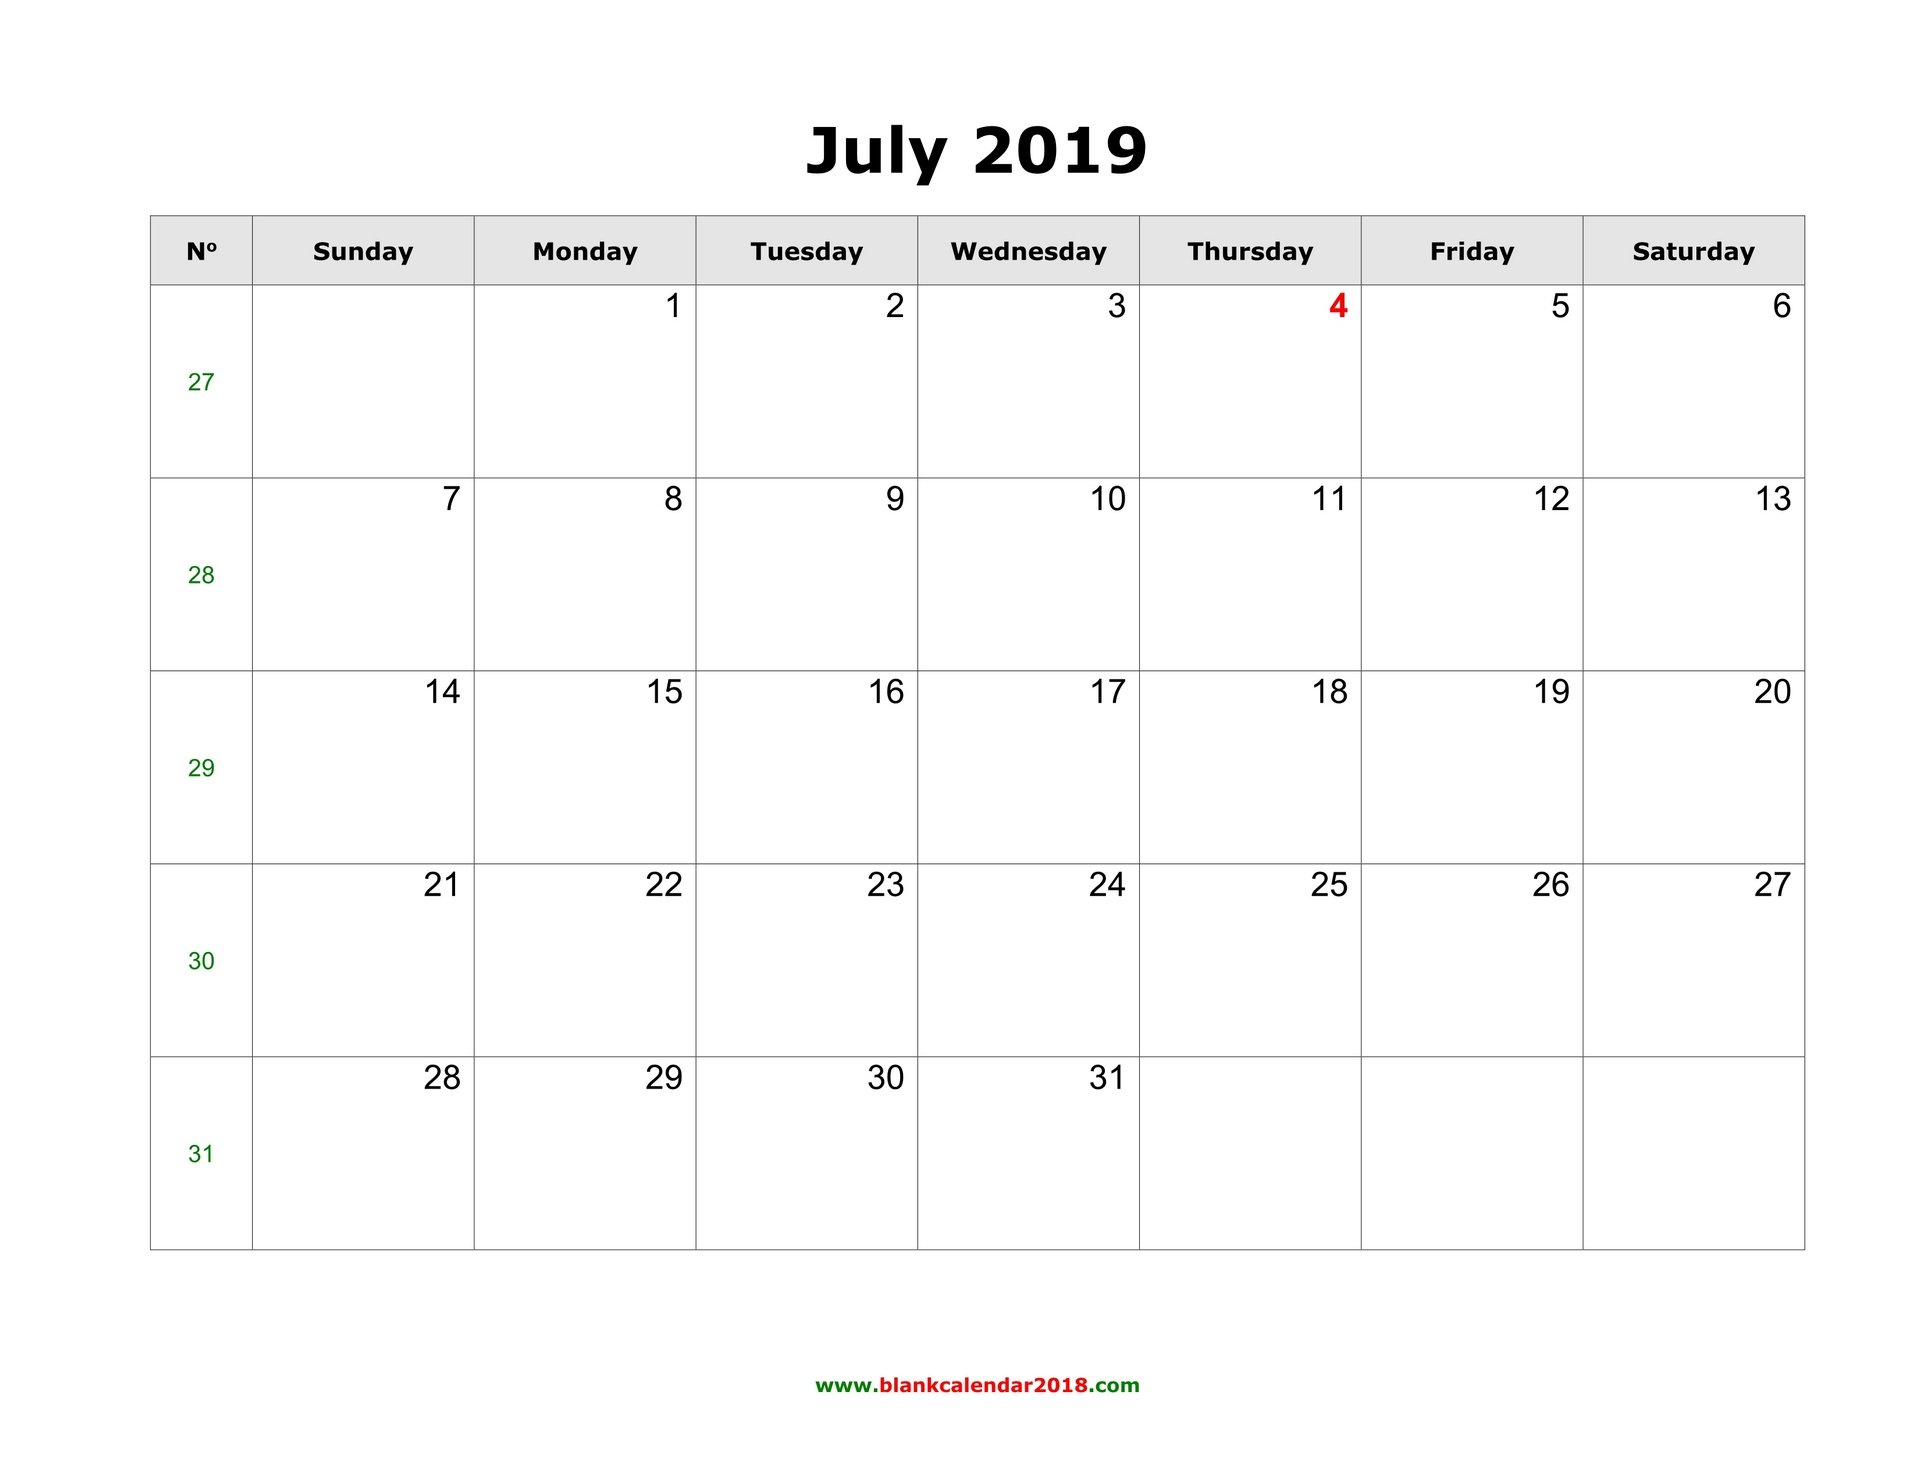 Blank Calendar For July 2019 Print Free Calendars Without Downloading 2018